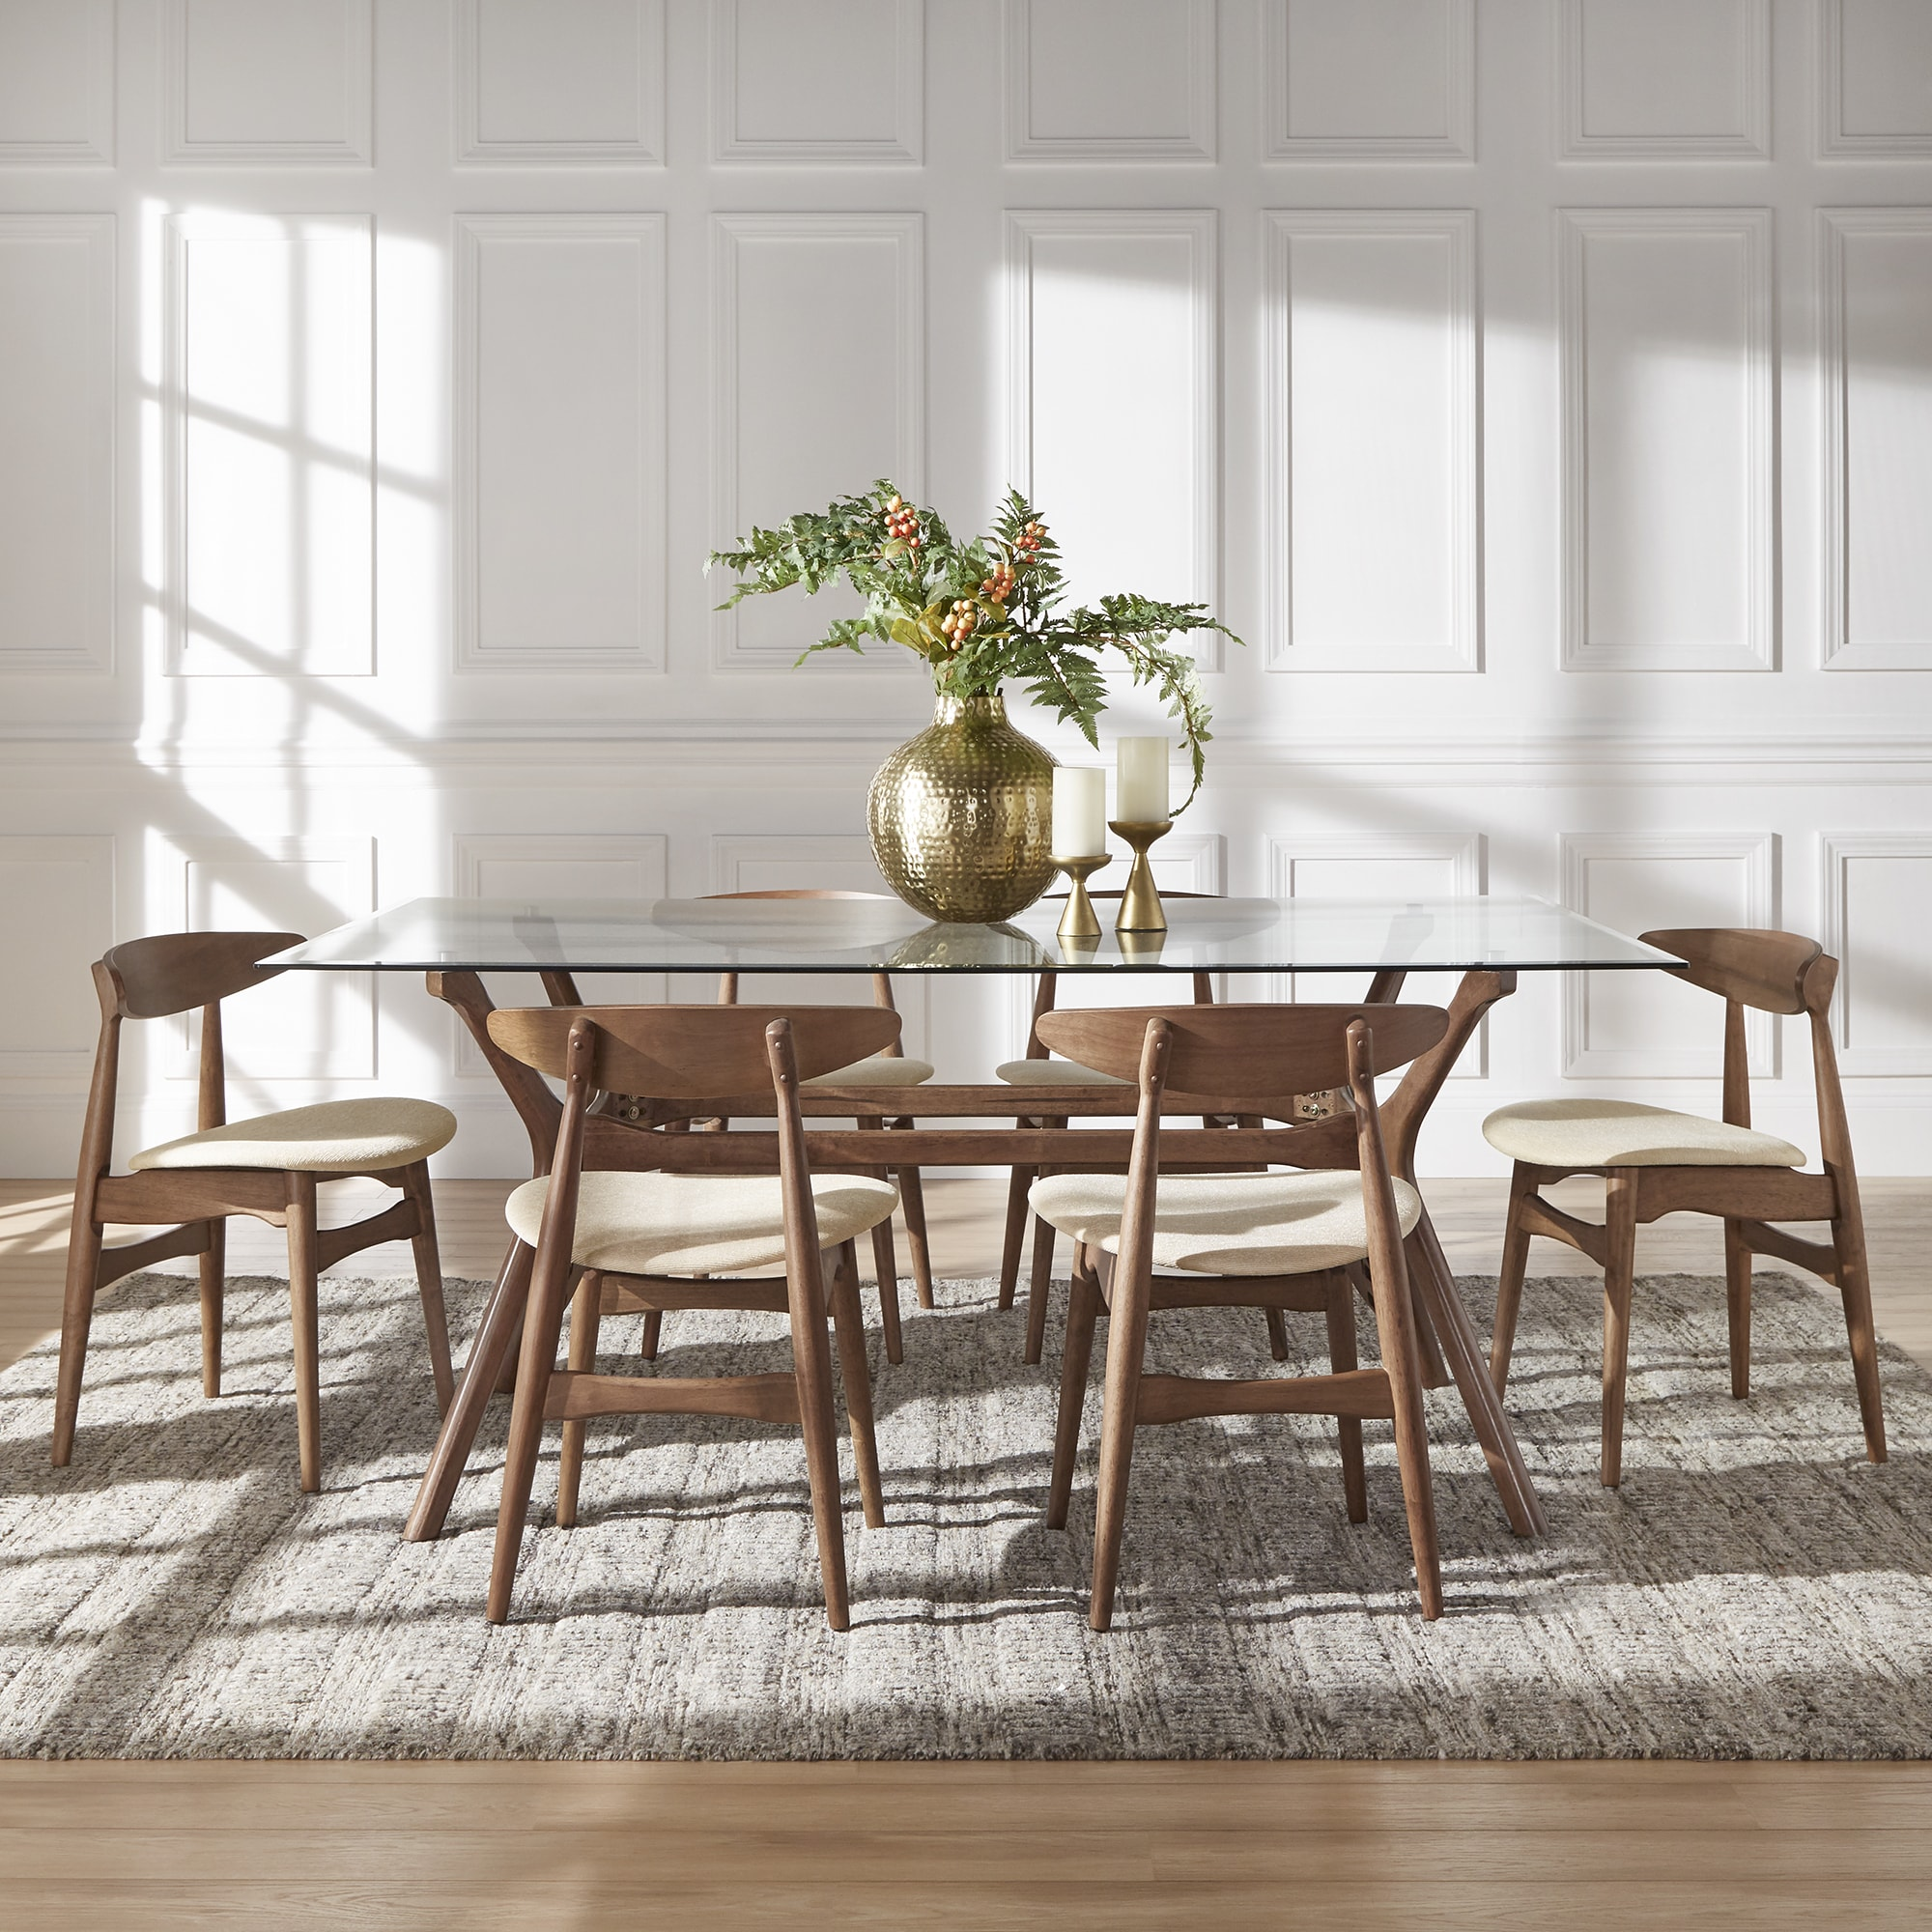 Nadine Walnut Finish Glass Table Top Rectangular Dining Set - Curved Back  Chairs by iNSPIRE Q Modern - Free Shipping Today - Overstock.com - 24360004